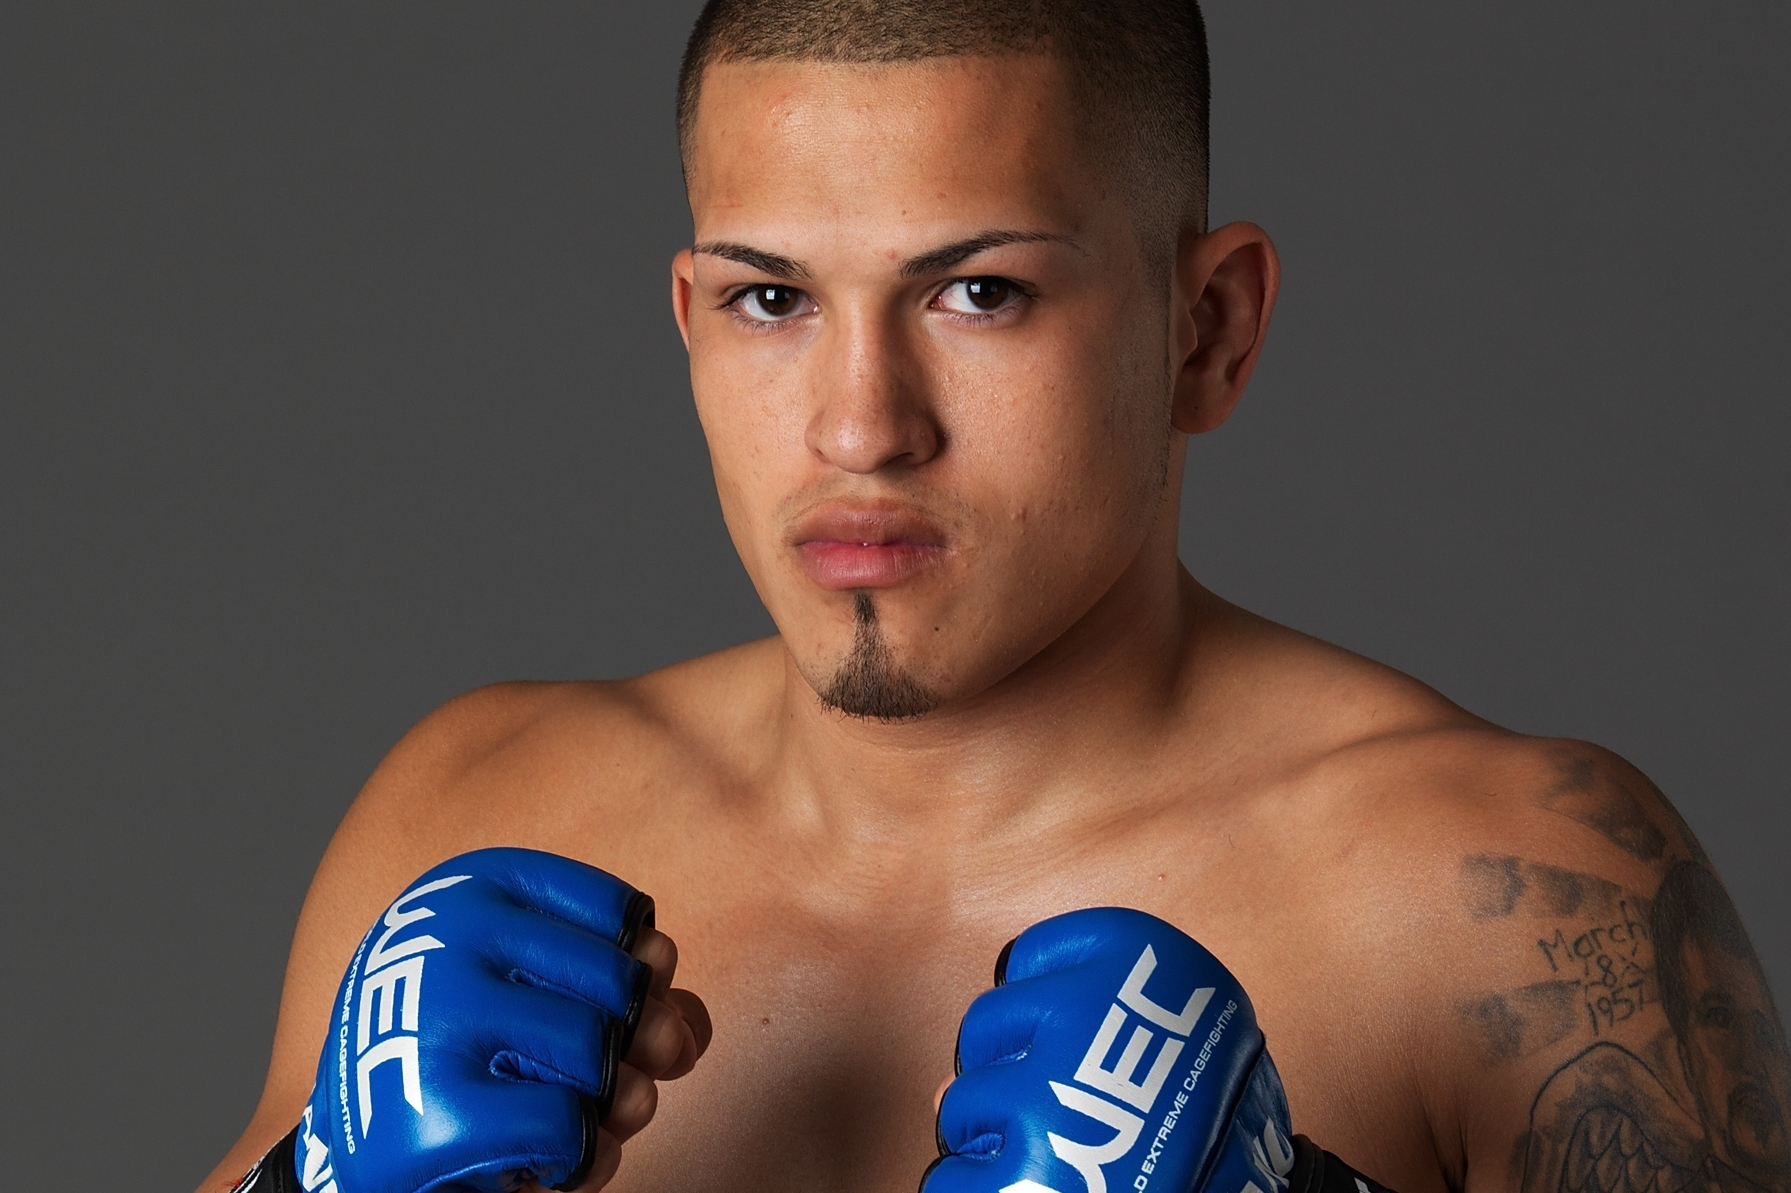 anthony pettis - photo #23